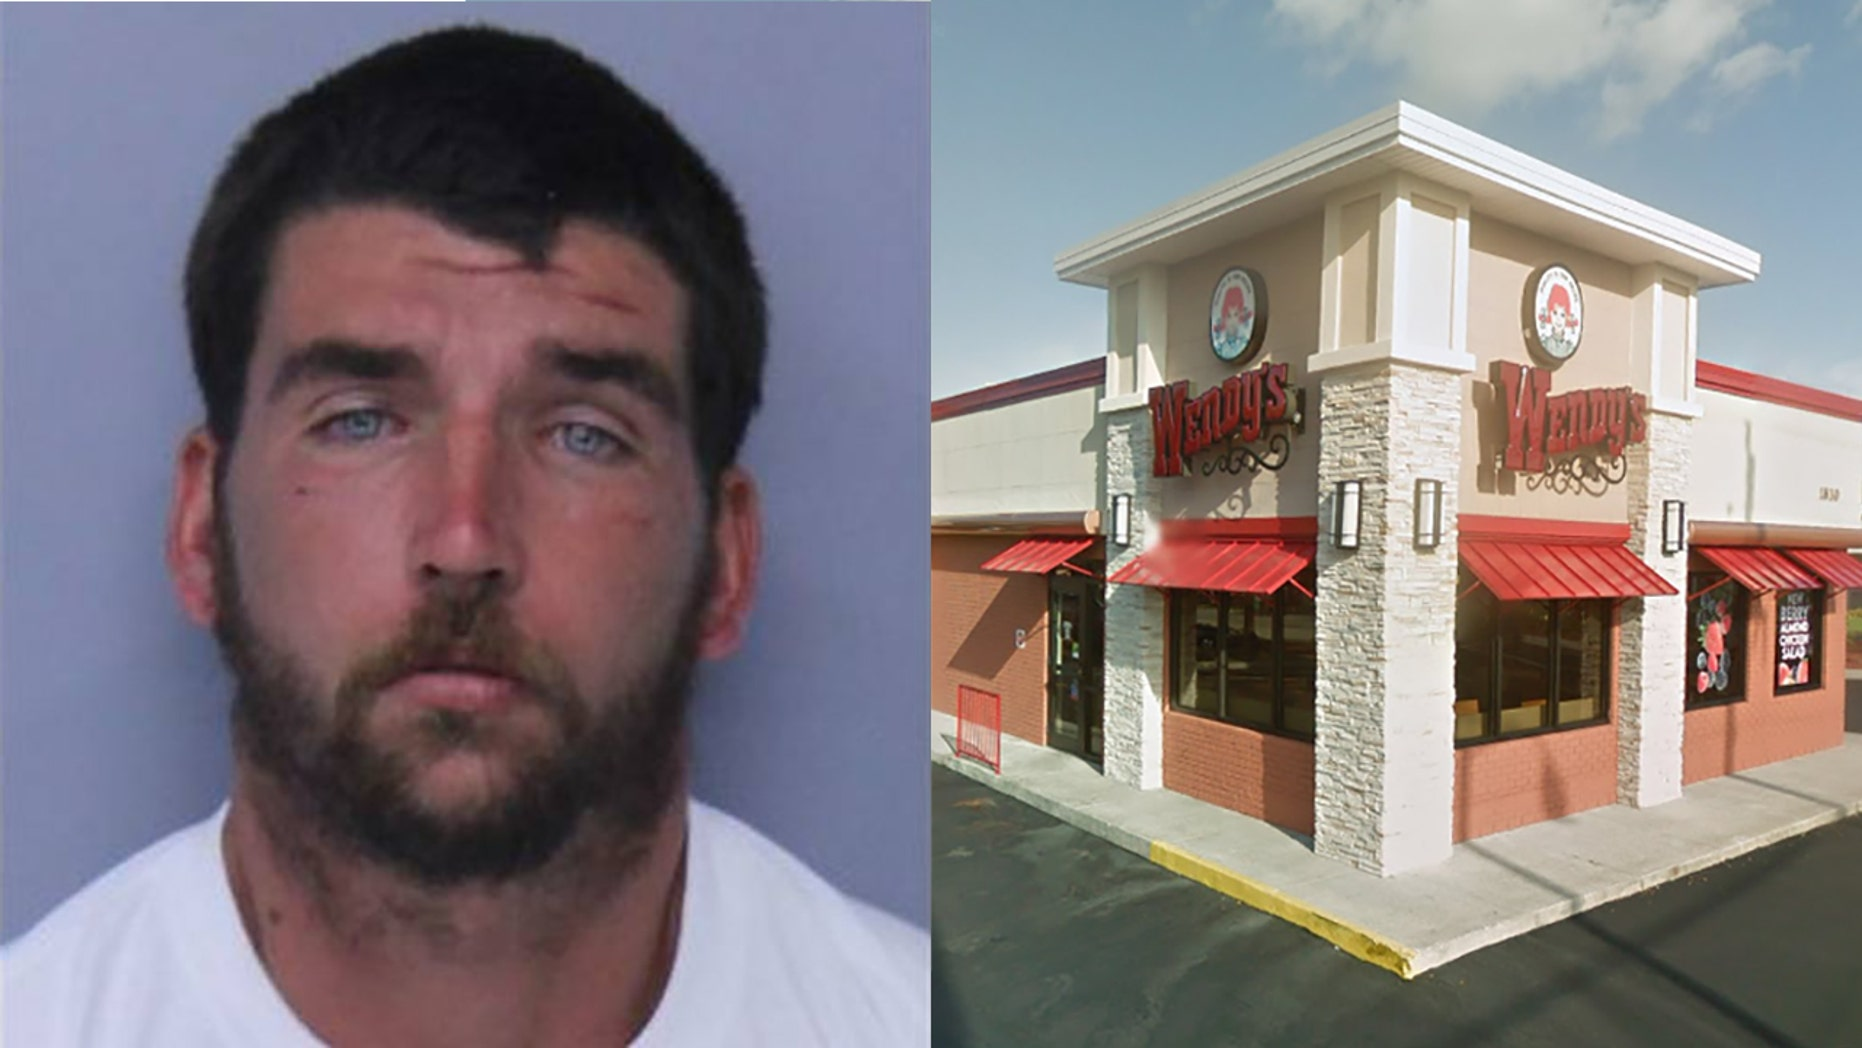 Timothy Weber, 31, was arrested following a standoff on the roof of a Wendy's in St. Augustine, Fla.